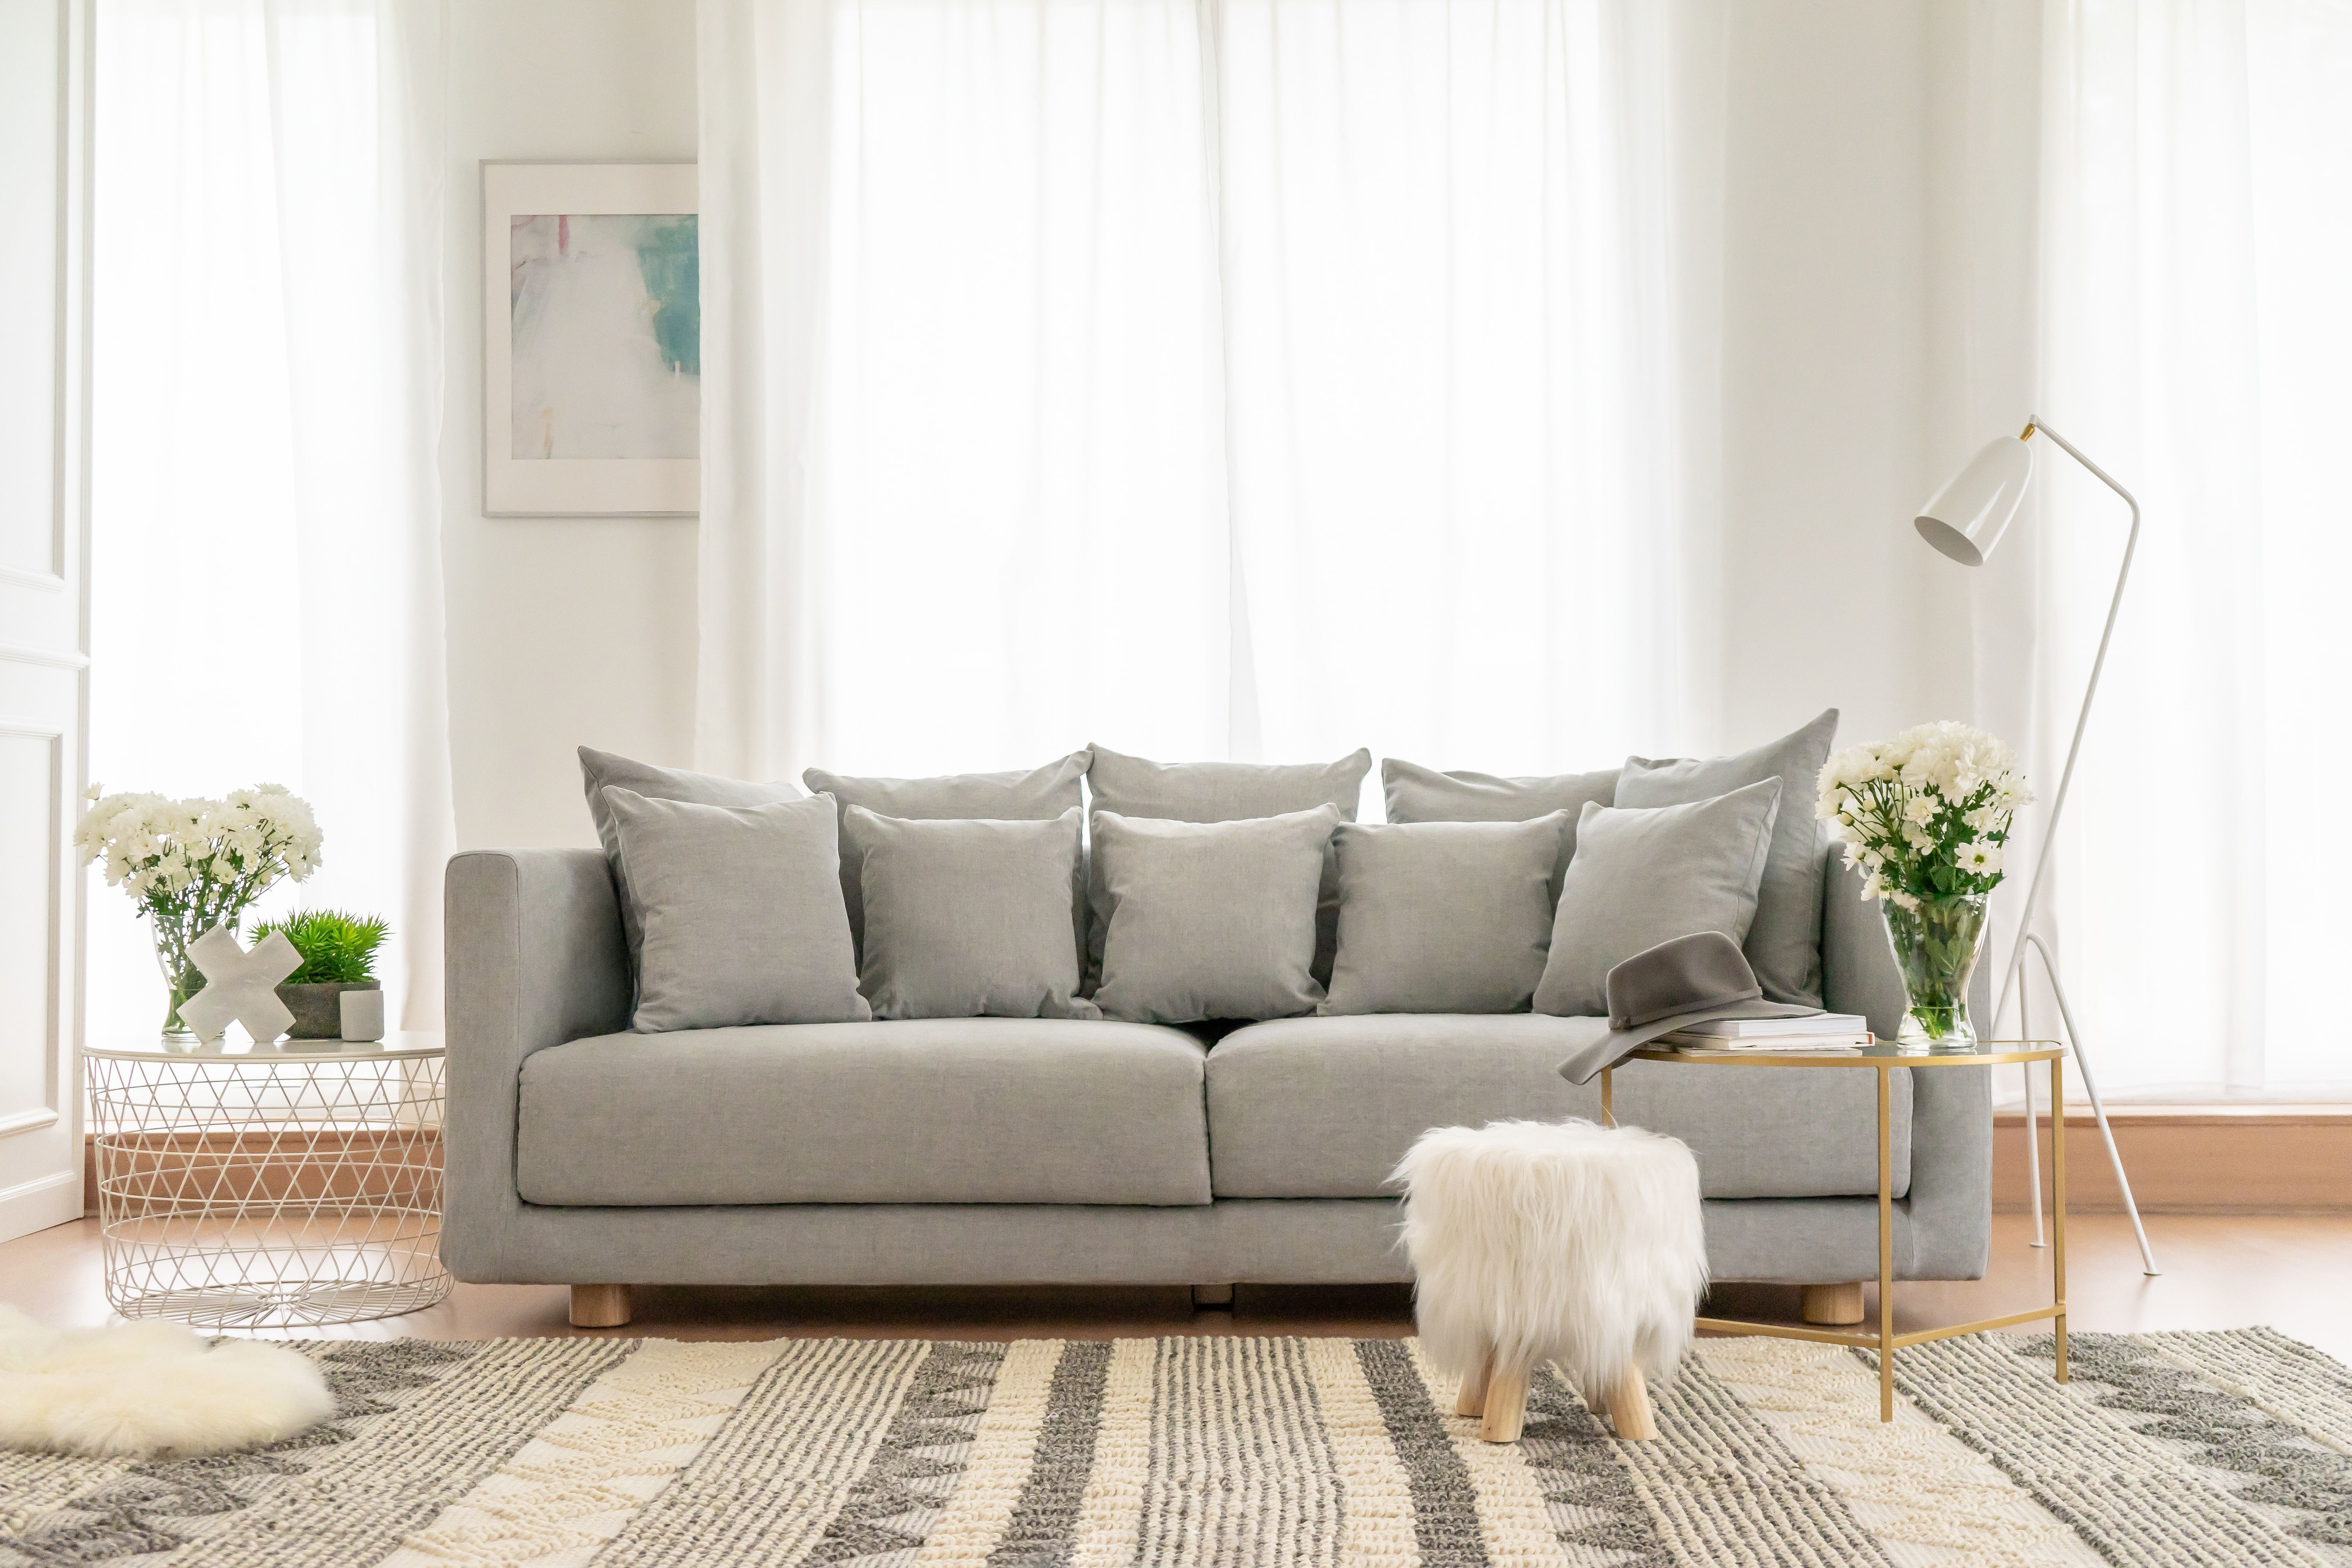 Custom Slipcovers For Ikea Stockholm 2017 Sofa In Our Madison Cotton Fabric Our New Durable Washable Cottons Are Super Comforta Ikea Ev Dekorasyonu Stockholm